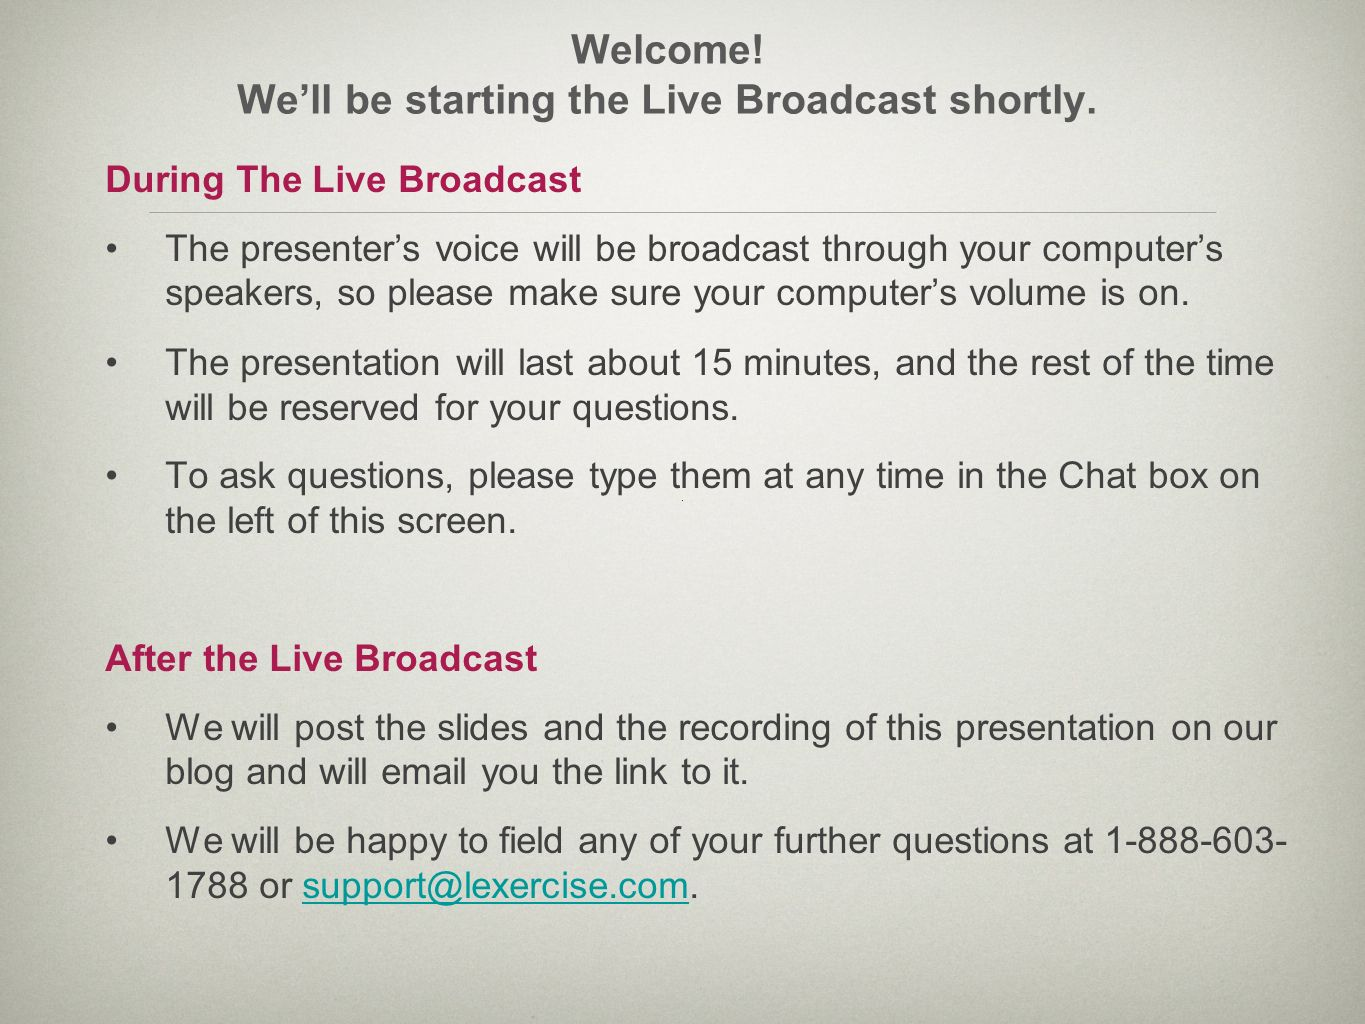 Welcome! Well be starting the Live Broadcast shortly. During The Live Broadcast The presenters voice will be broadcast through your computers speakers